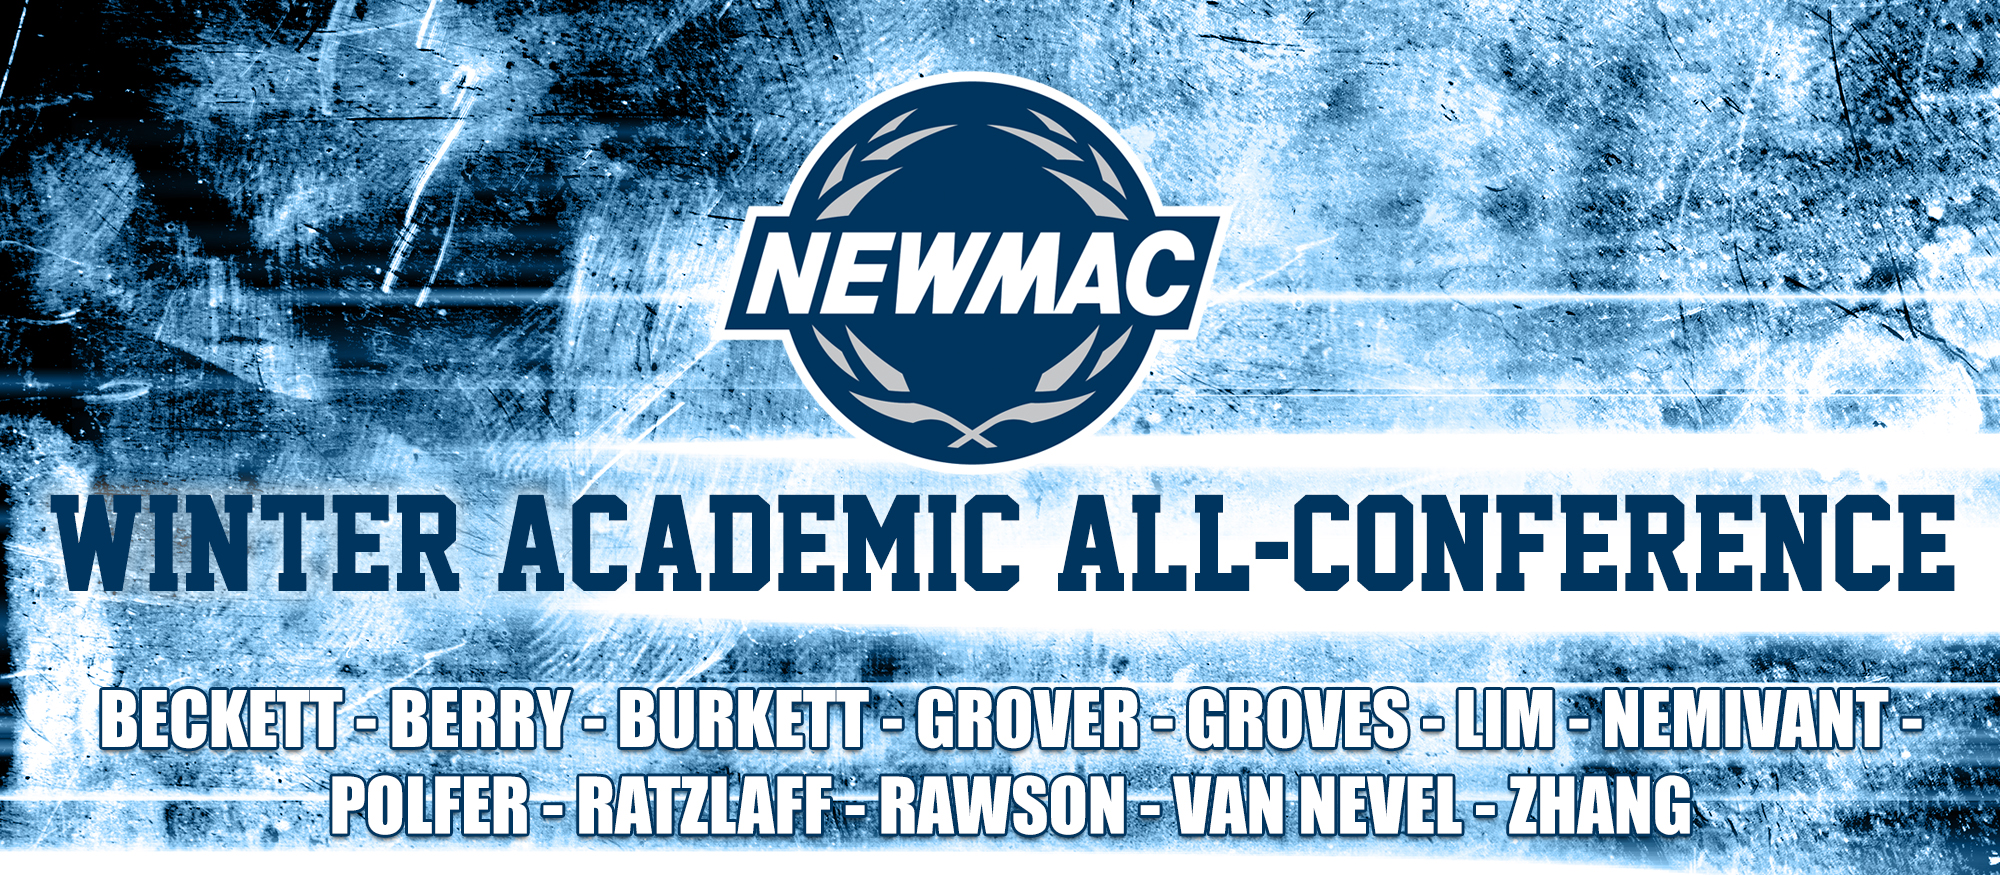 Graphic promoting the 2017-18 NEWMAC Winter Academic All-Conference selections from the sports of Basketball and Swimming & Diving.